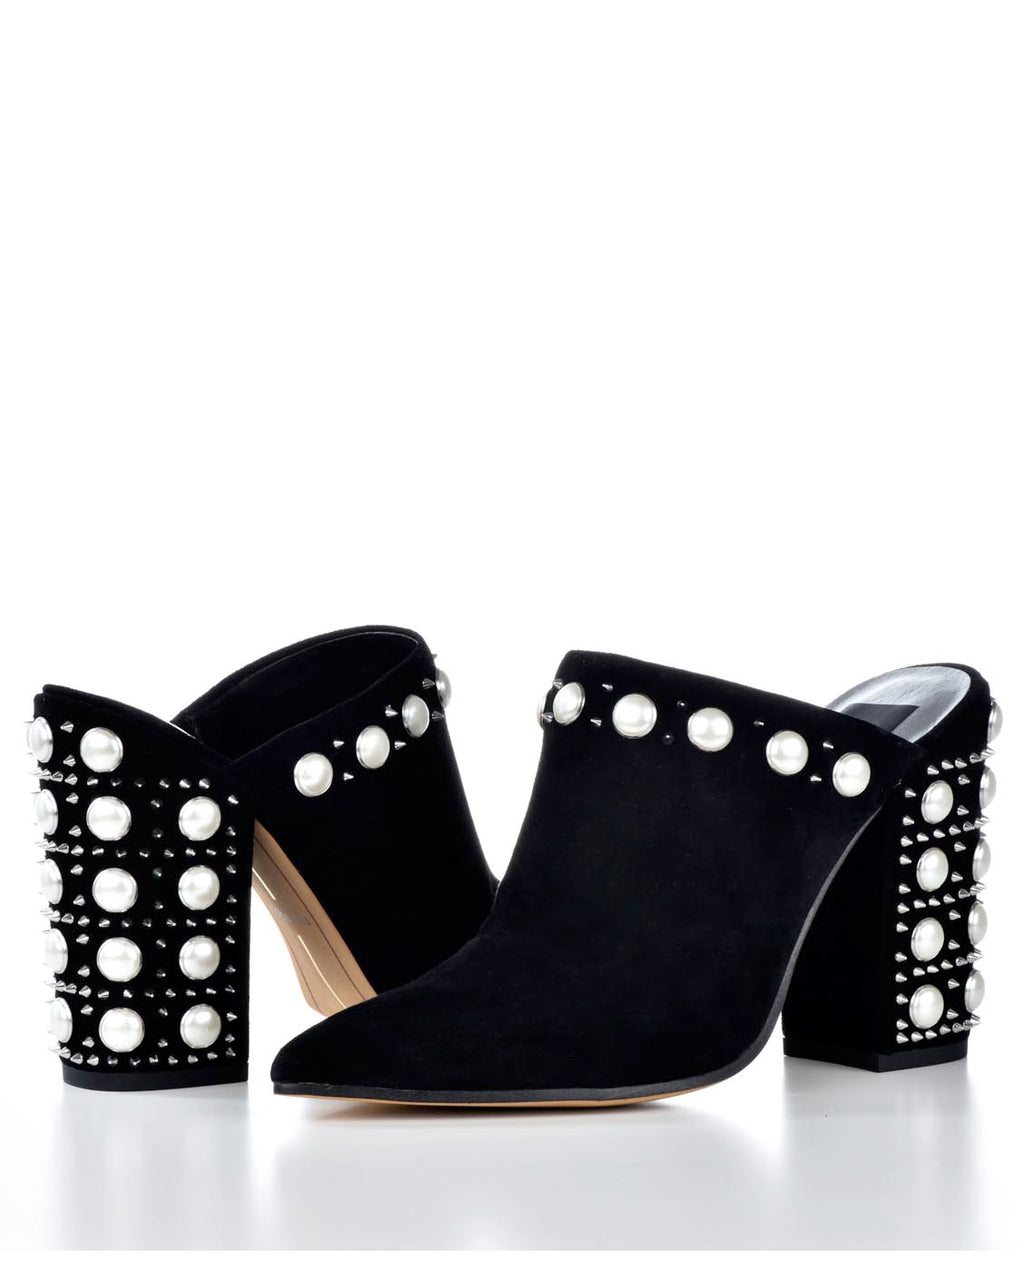 Dolce Vita Slip On Booties - Fashion You Up